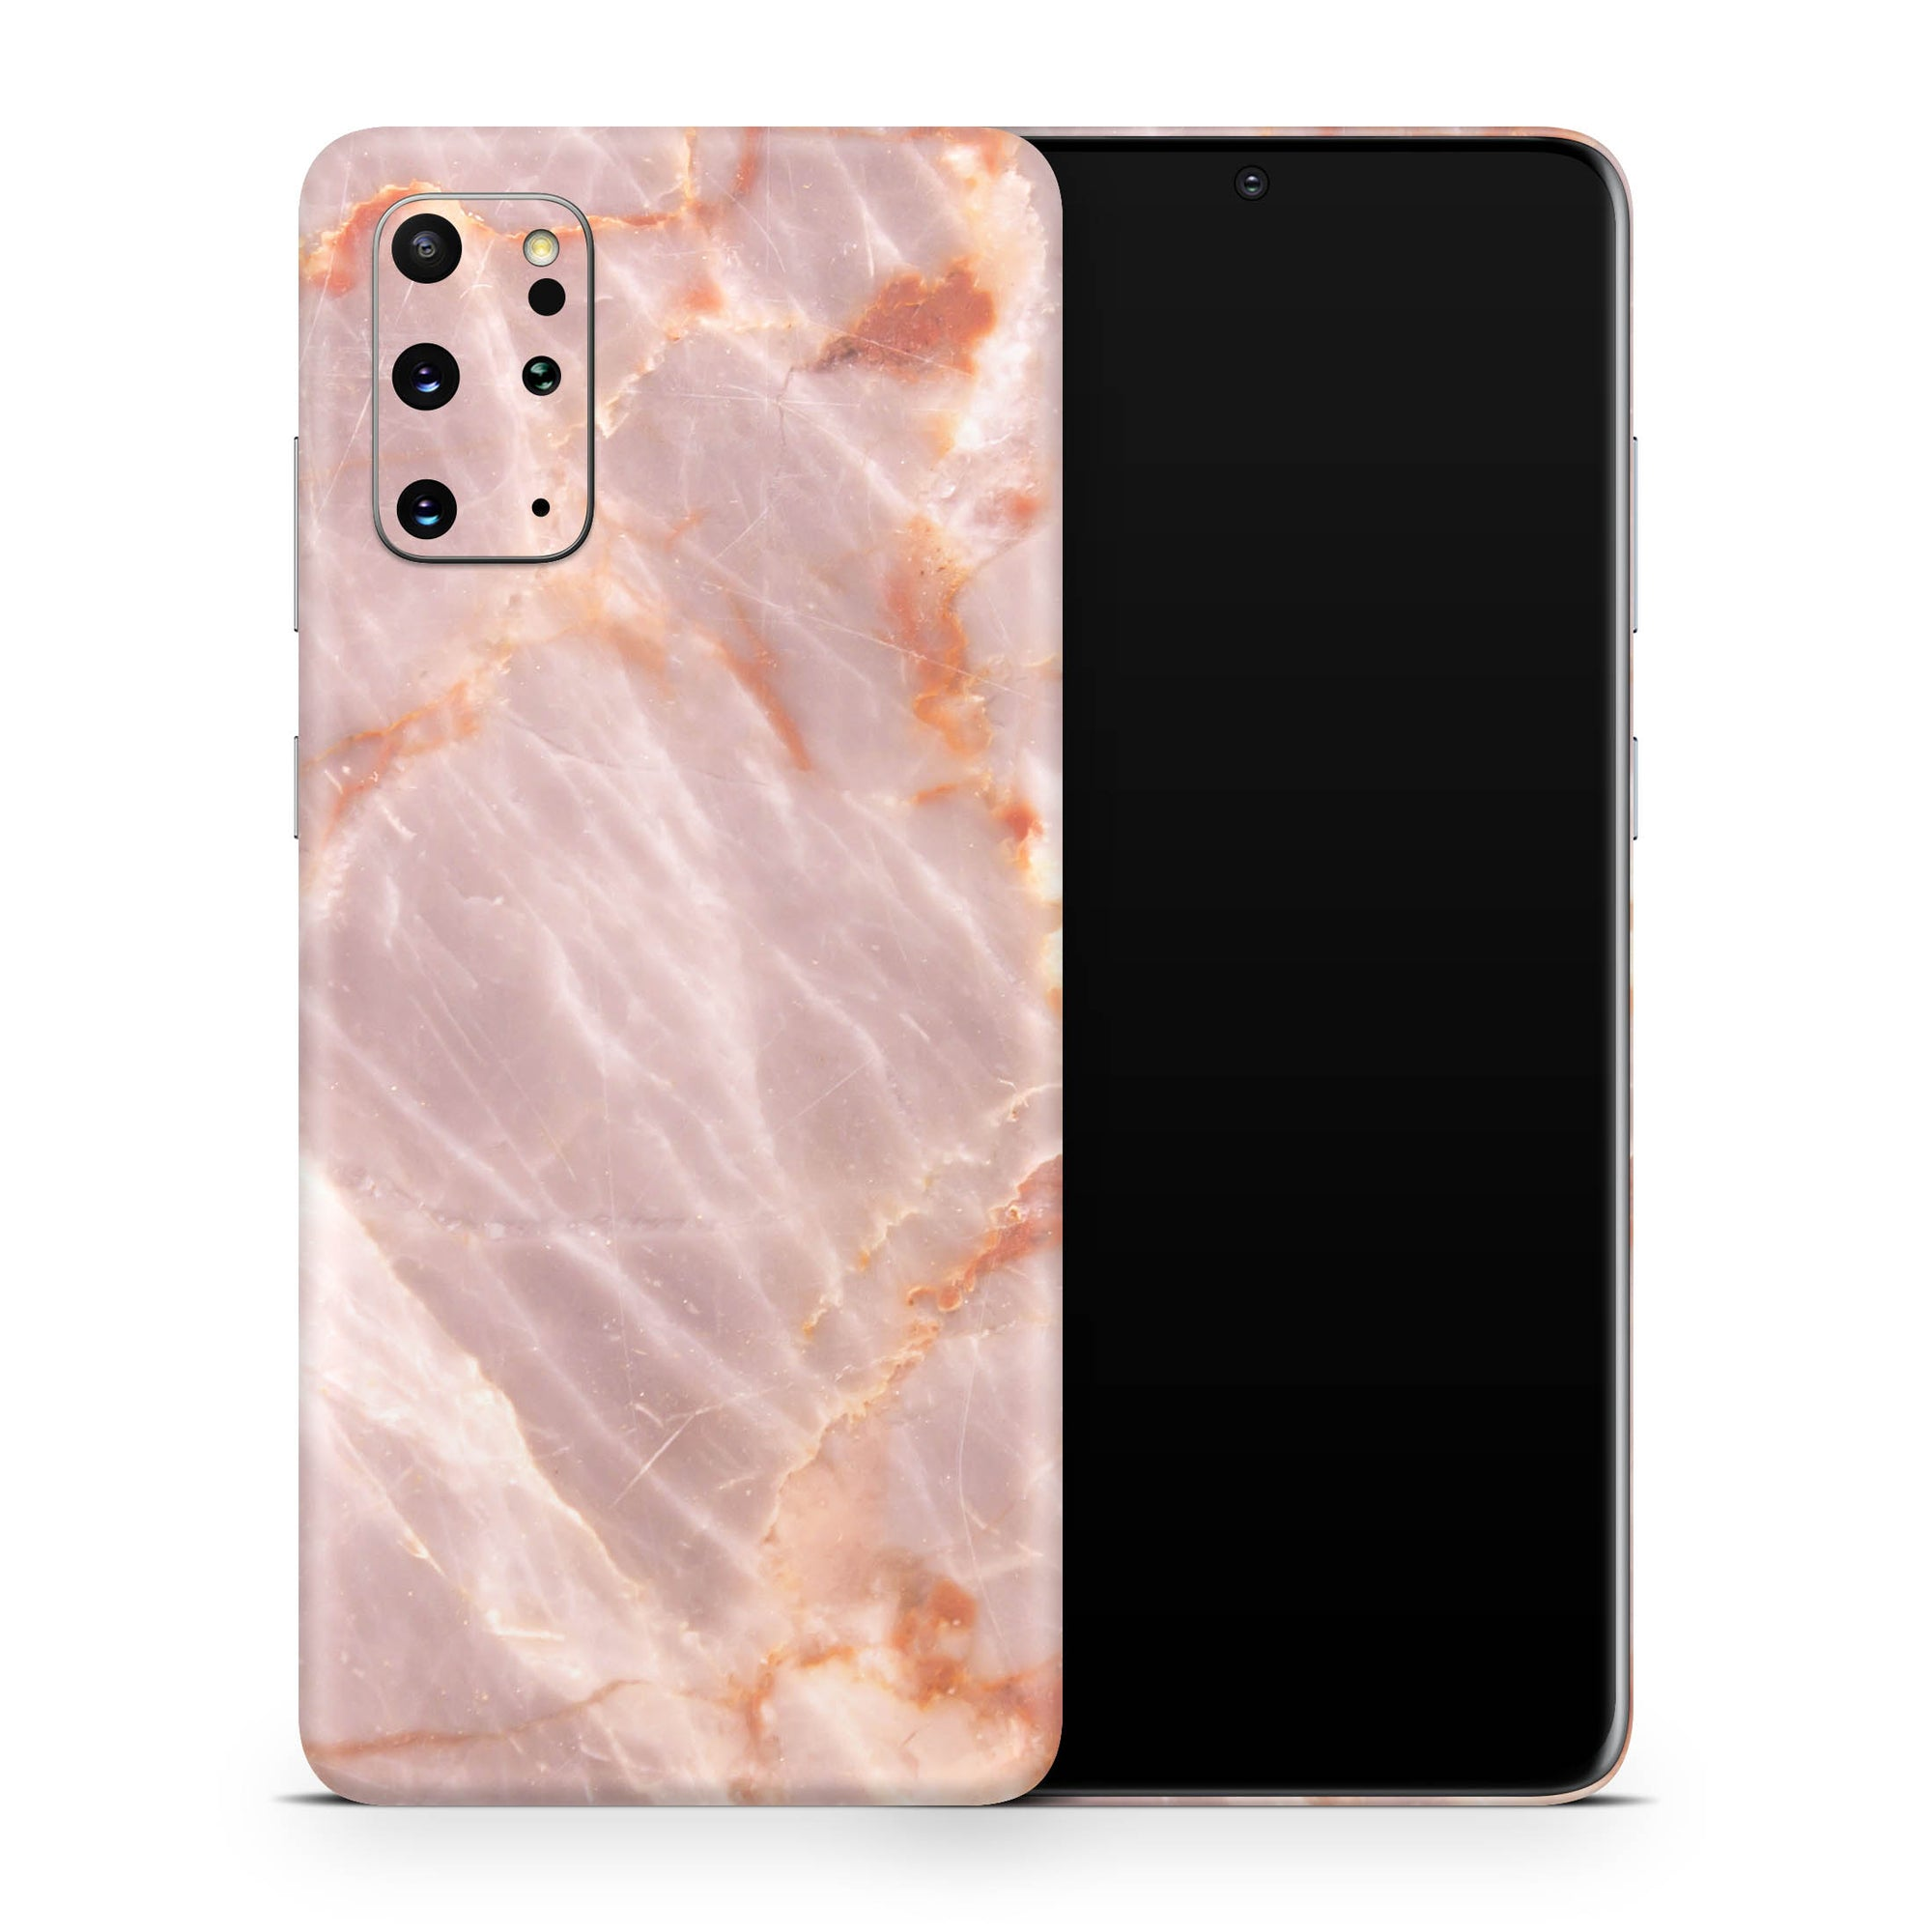 Blush Marble Galaxy S20 Ultra Skin + Case-Uniqfind